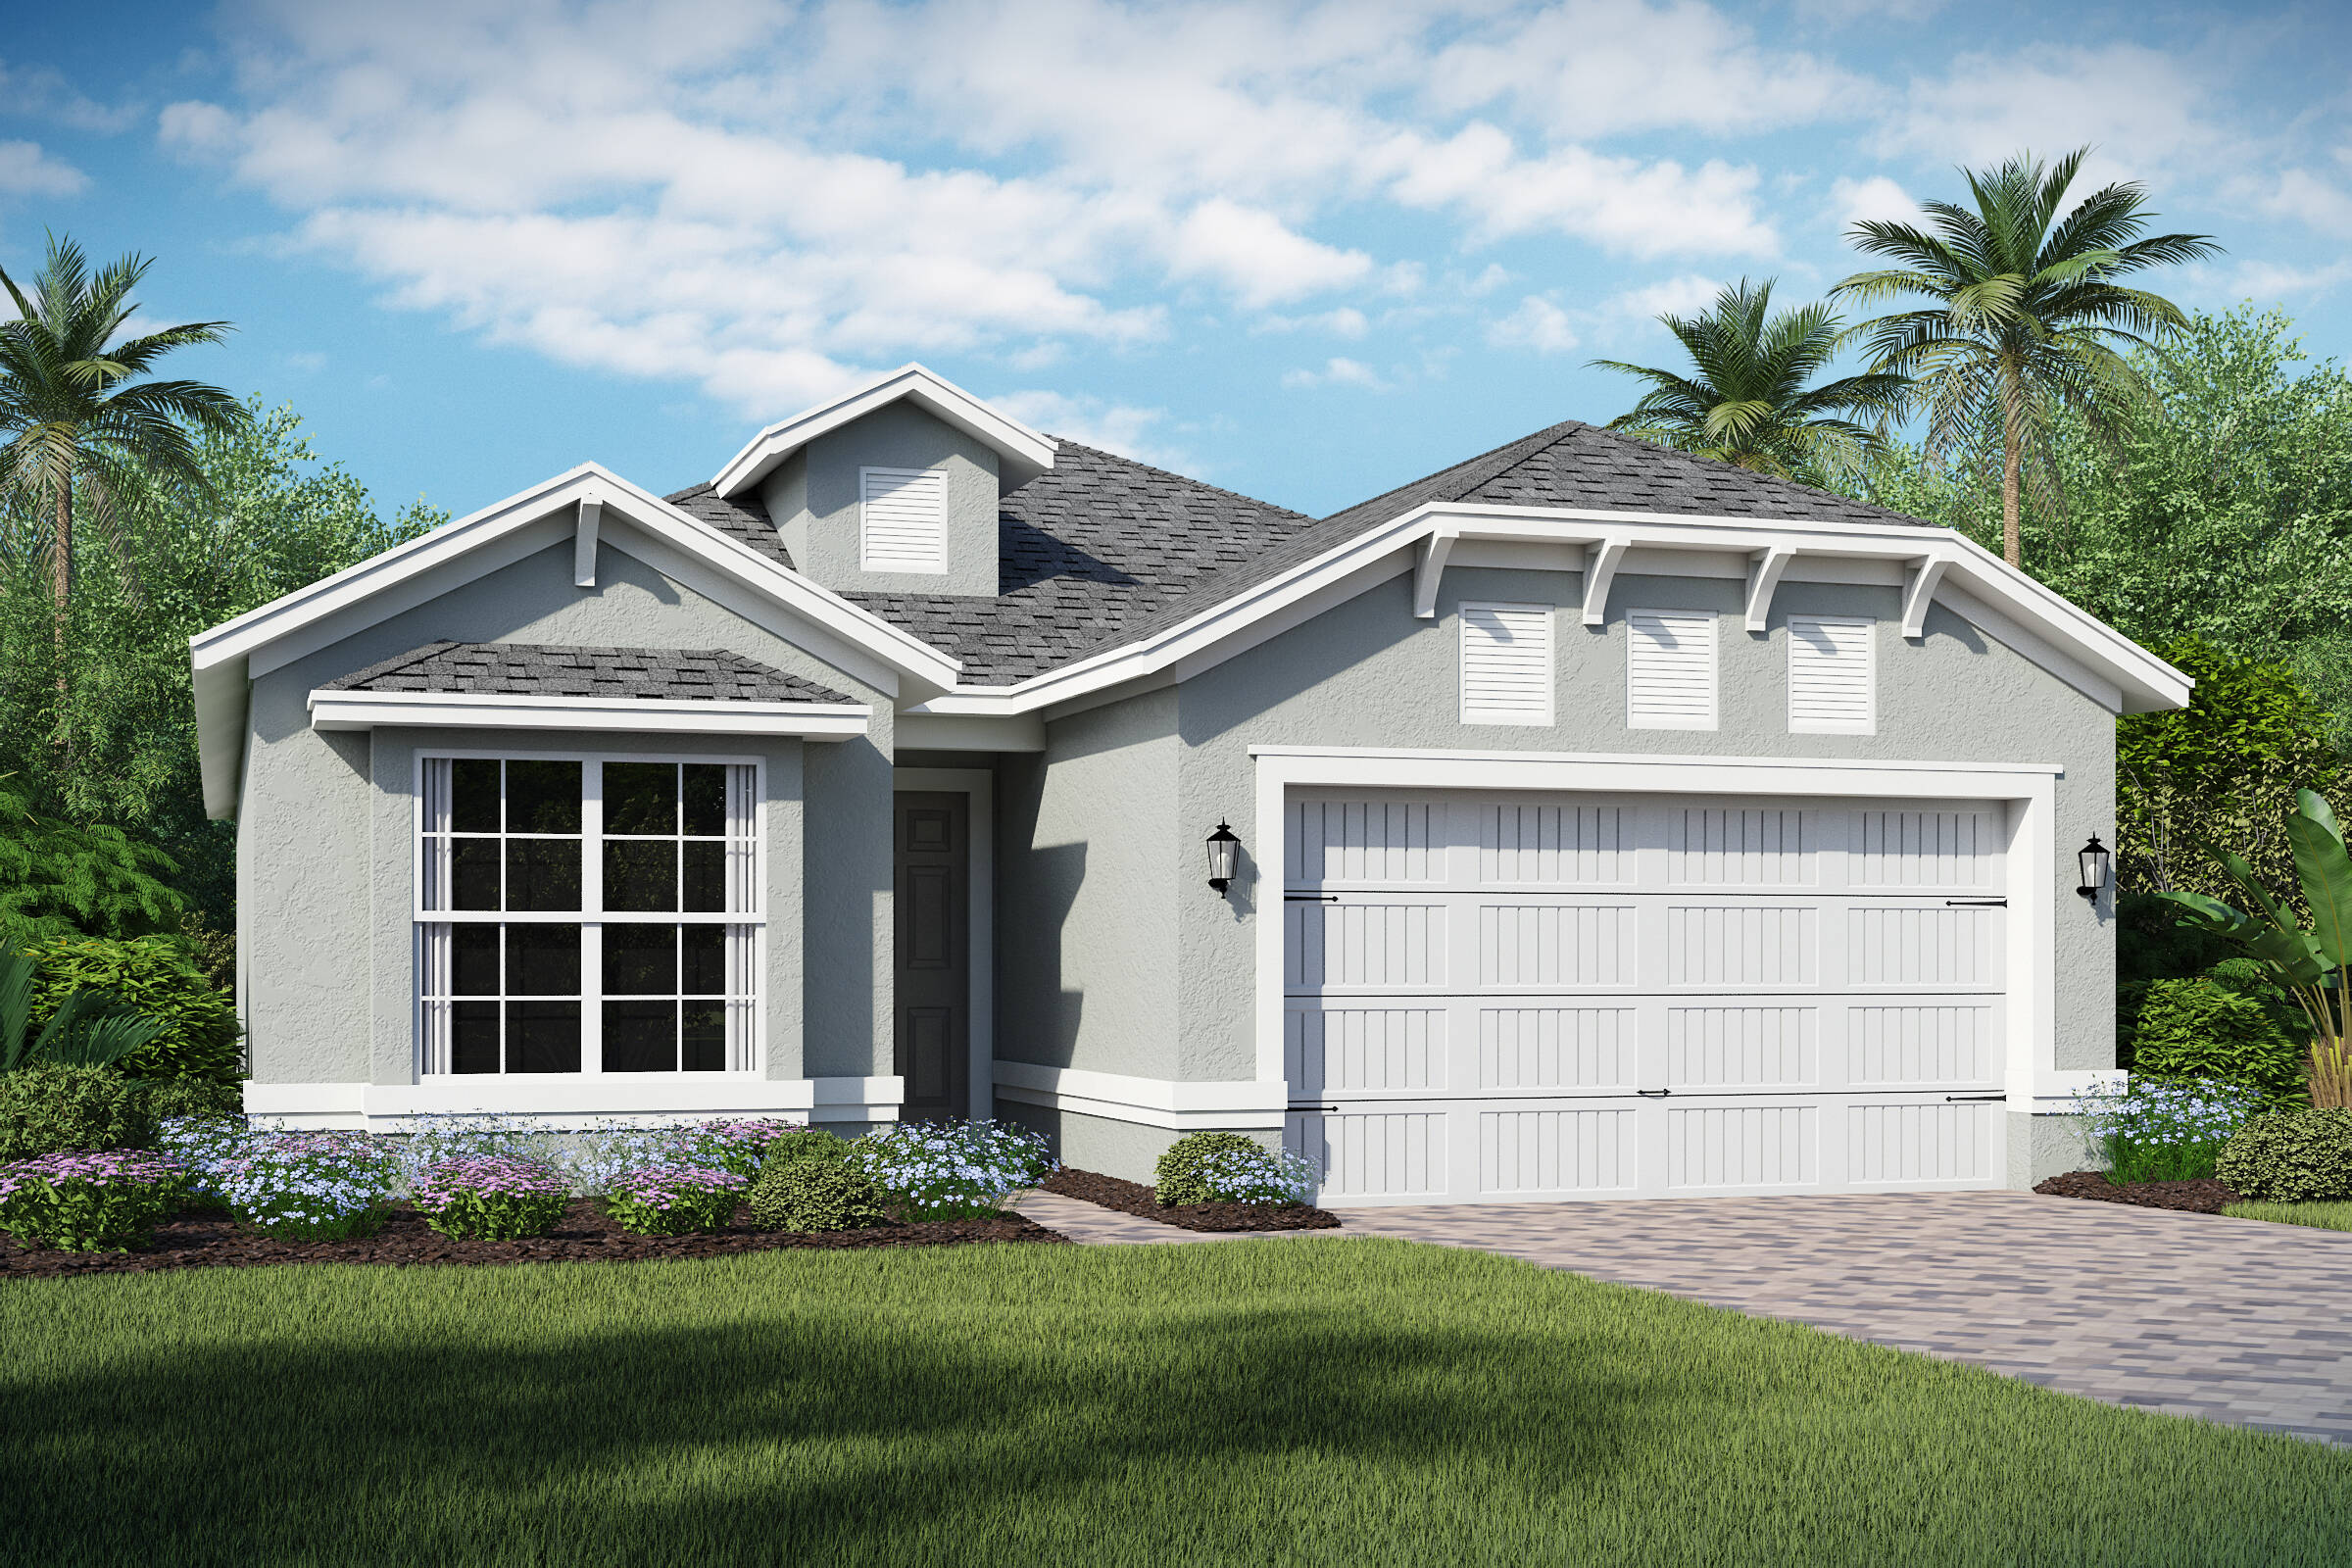 Balfour-B-elev new homes in orlando